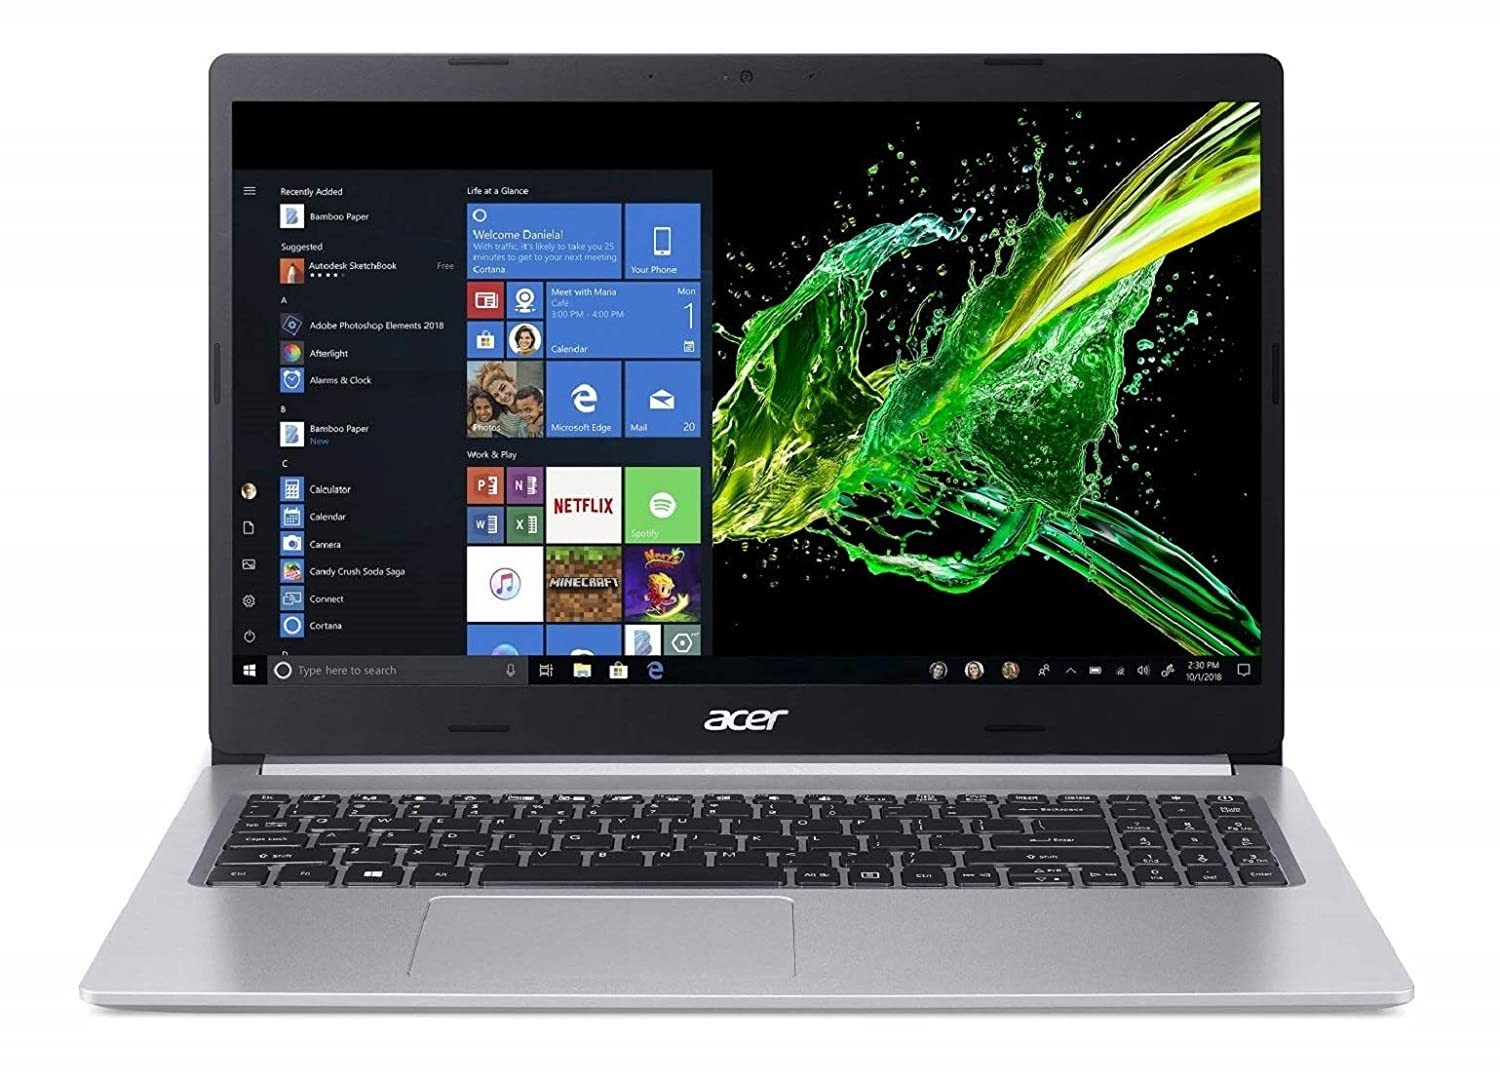 Refurbished laptops & desktops - ACER ASPIRE 5 SLIM A515-52G 15.6-INCH FHD THIN AND LIGHT NOTEBOOK(INTEL CORE I5-8265U WHISKY LAKE PROCESSOR/8GB RAM/2TB HDD + 512 SSD/WIN10/2 GB MX250 GRAPHICS), PURE SILVER